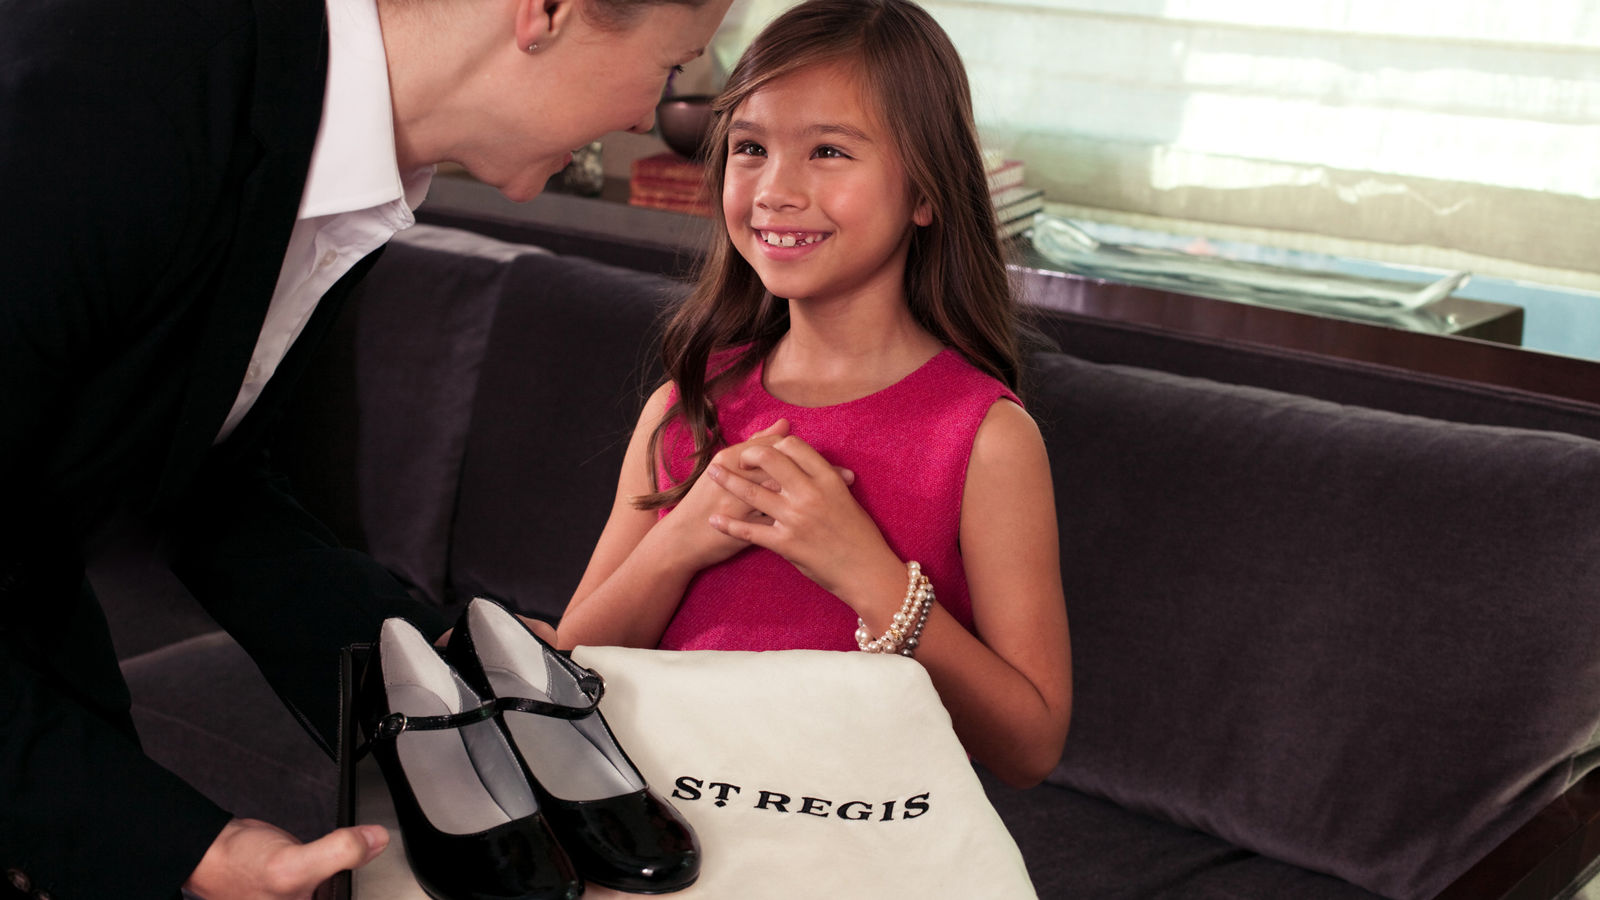 Moscow Luxury Hotels | The St. Regis Moscow | Family Traditions Regis | Butler services, shoe shine service for children.